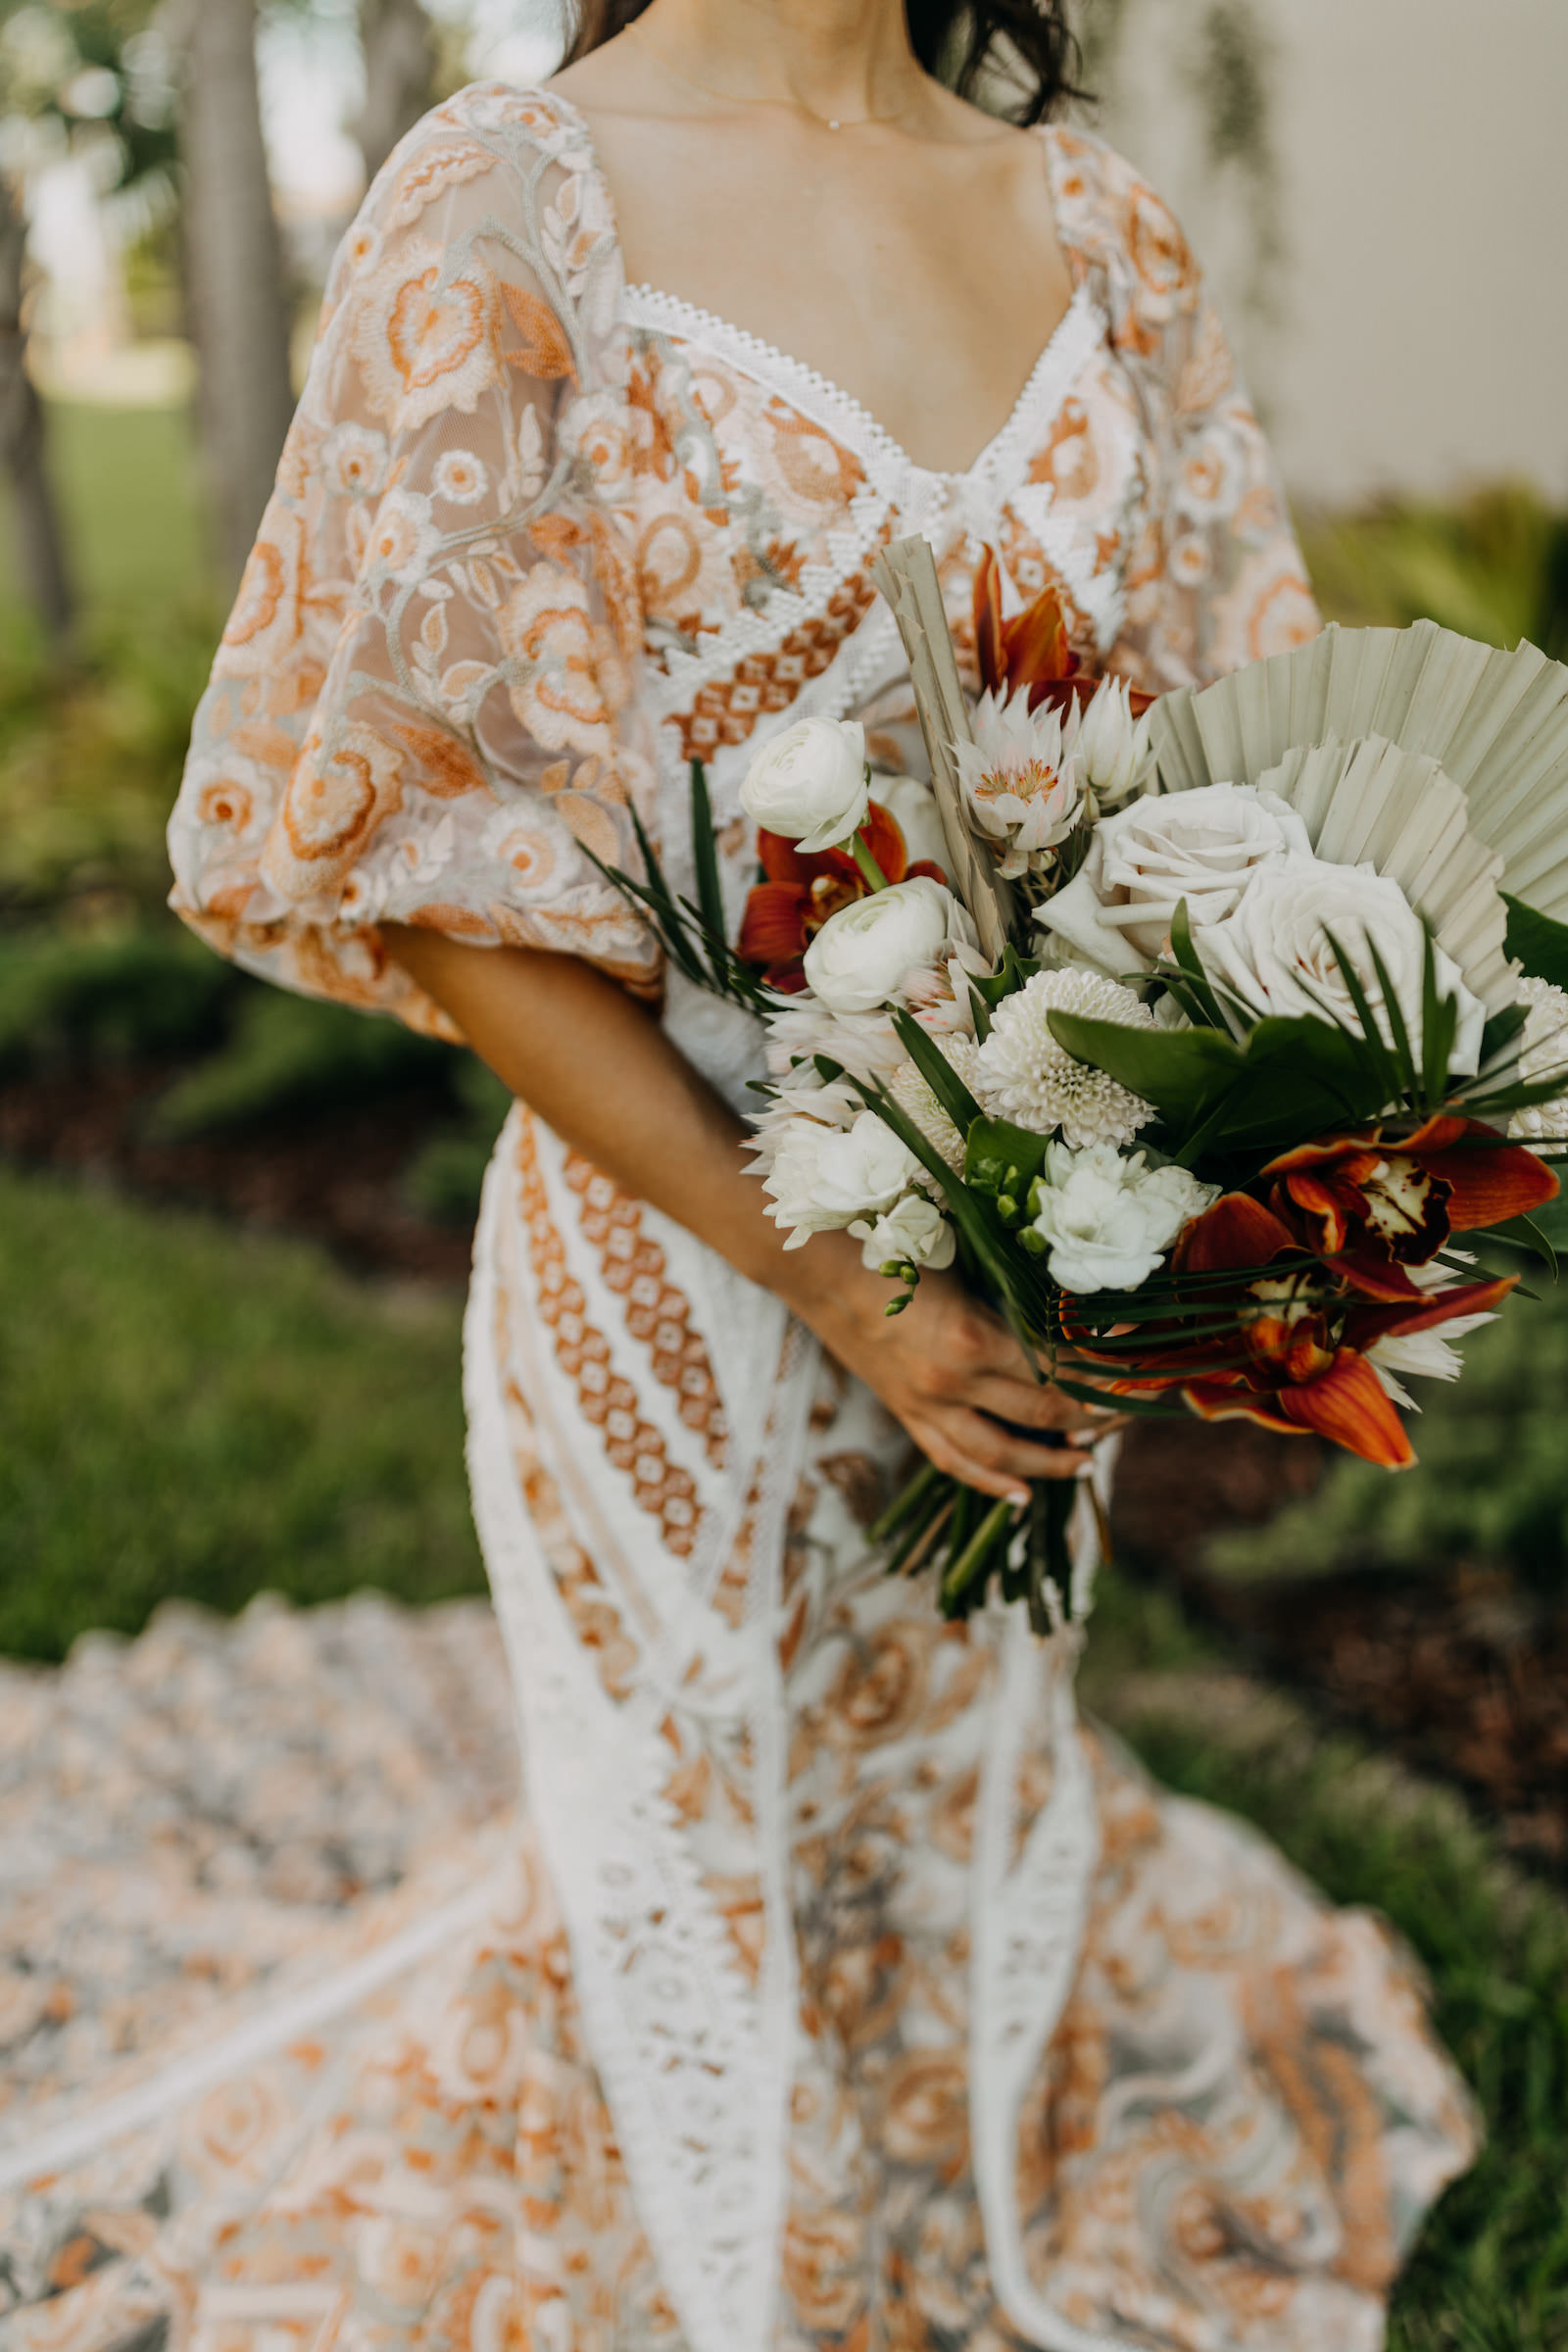 Boho Gold Bronze Embroidered Overlay Wedding Dress Bridal Gown with Illusion Sleeves and Train   Tropical Boho Bridal Bouquet with White Roses Orange Orchids and Palm Frond Leaves   Amber McWhorter Photography